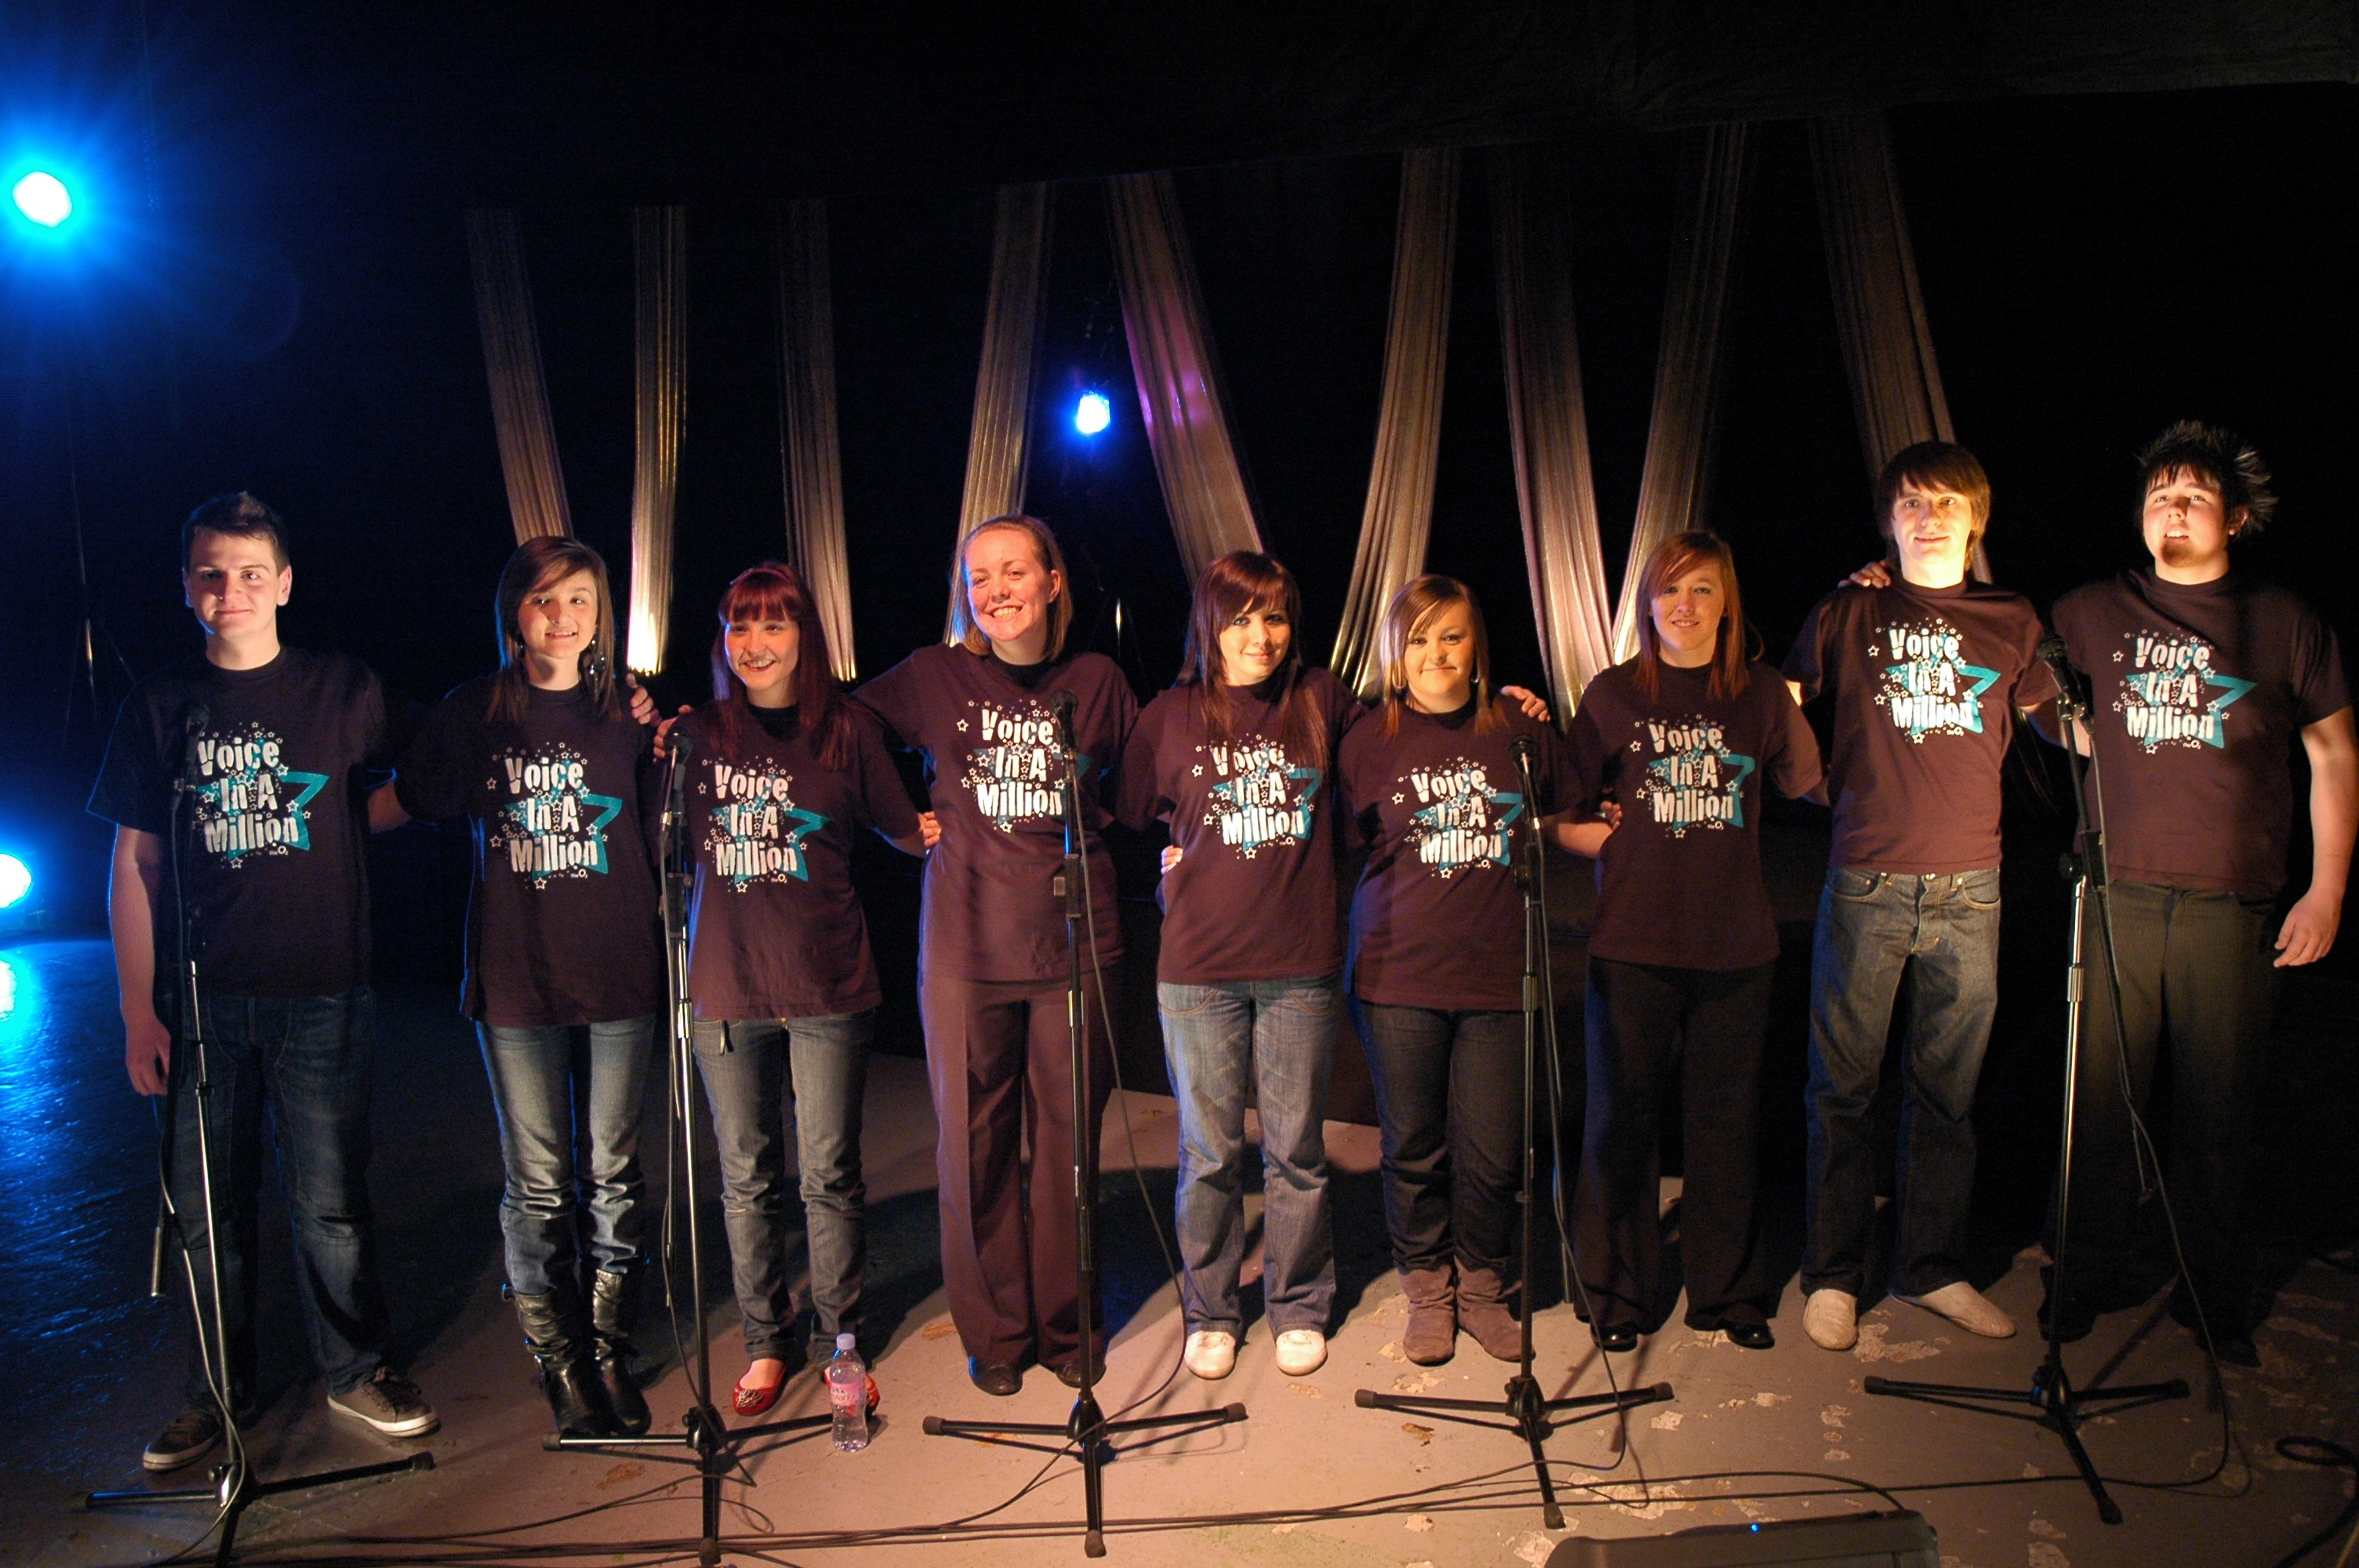 tredegar comprehensive school  u2013 voice in a million